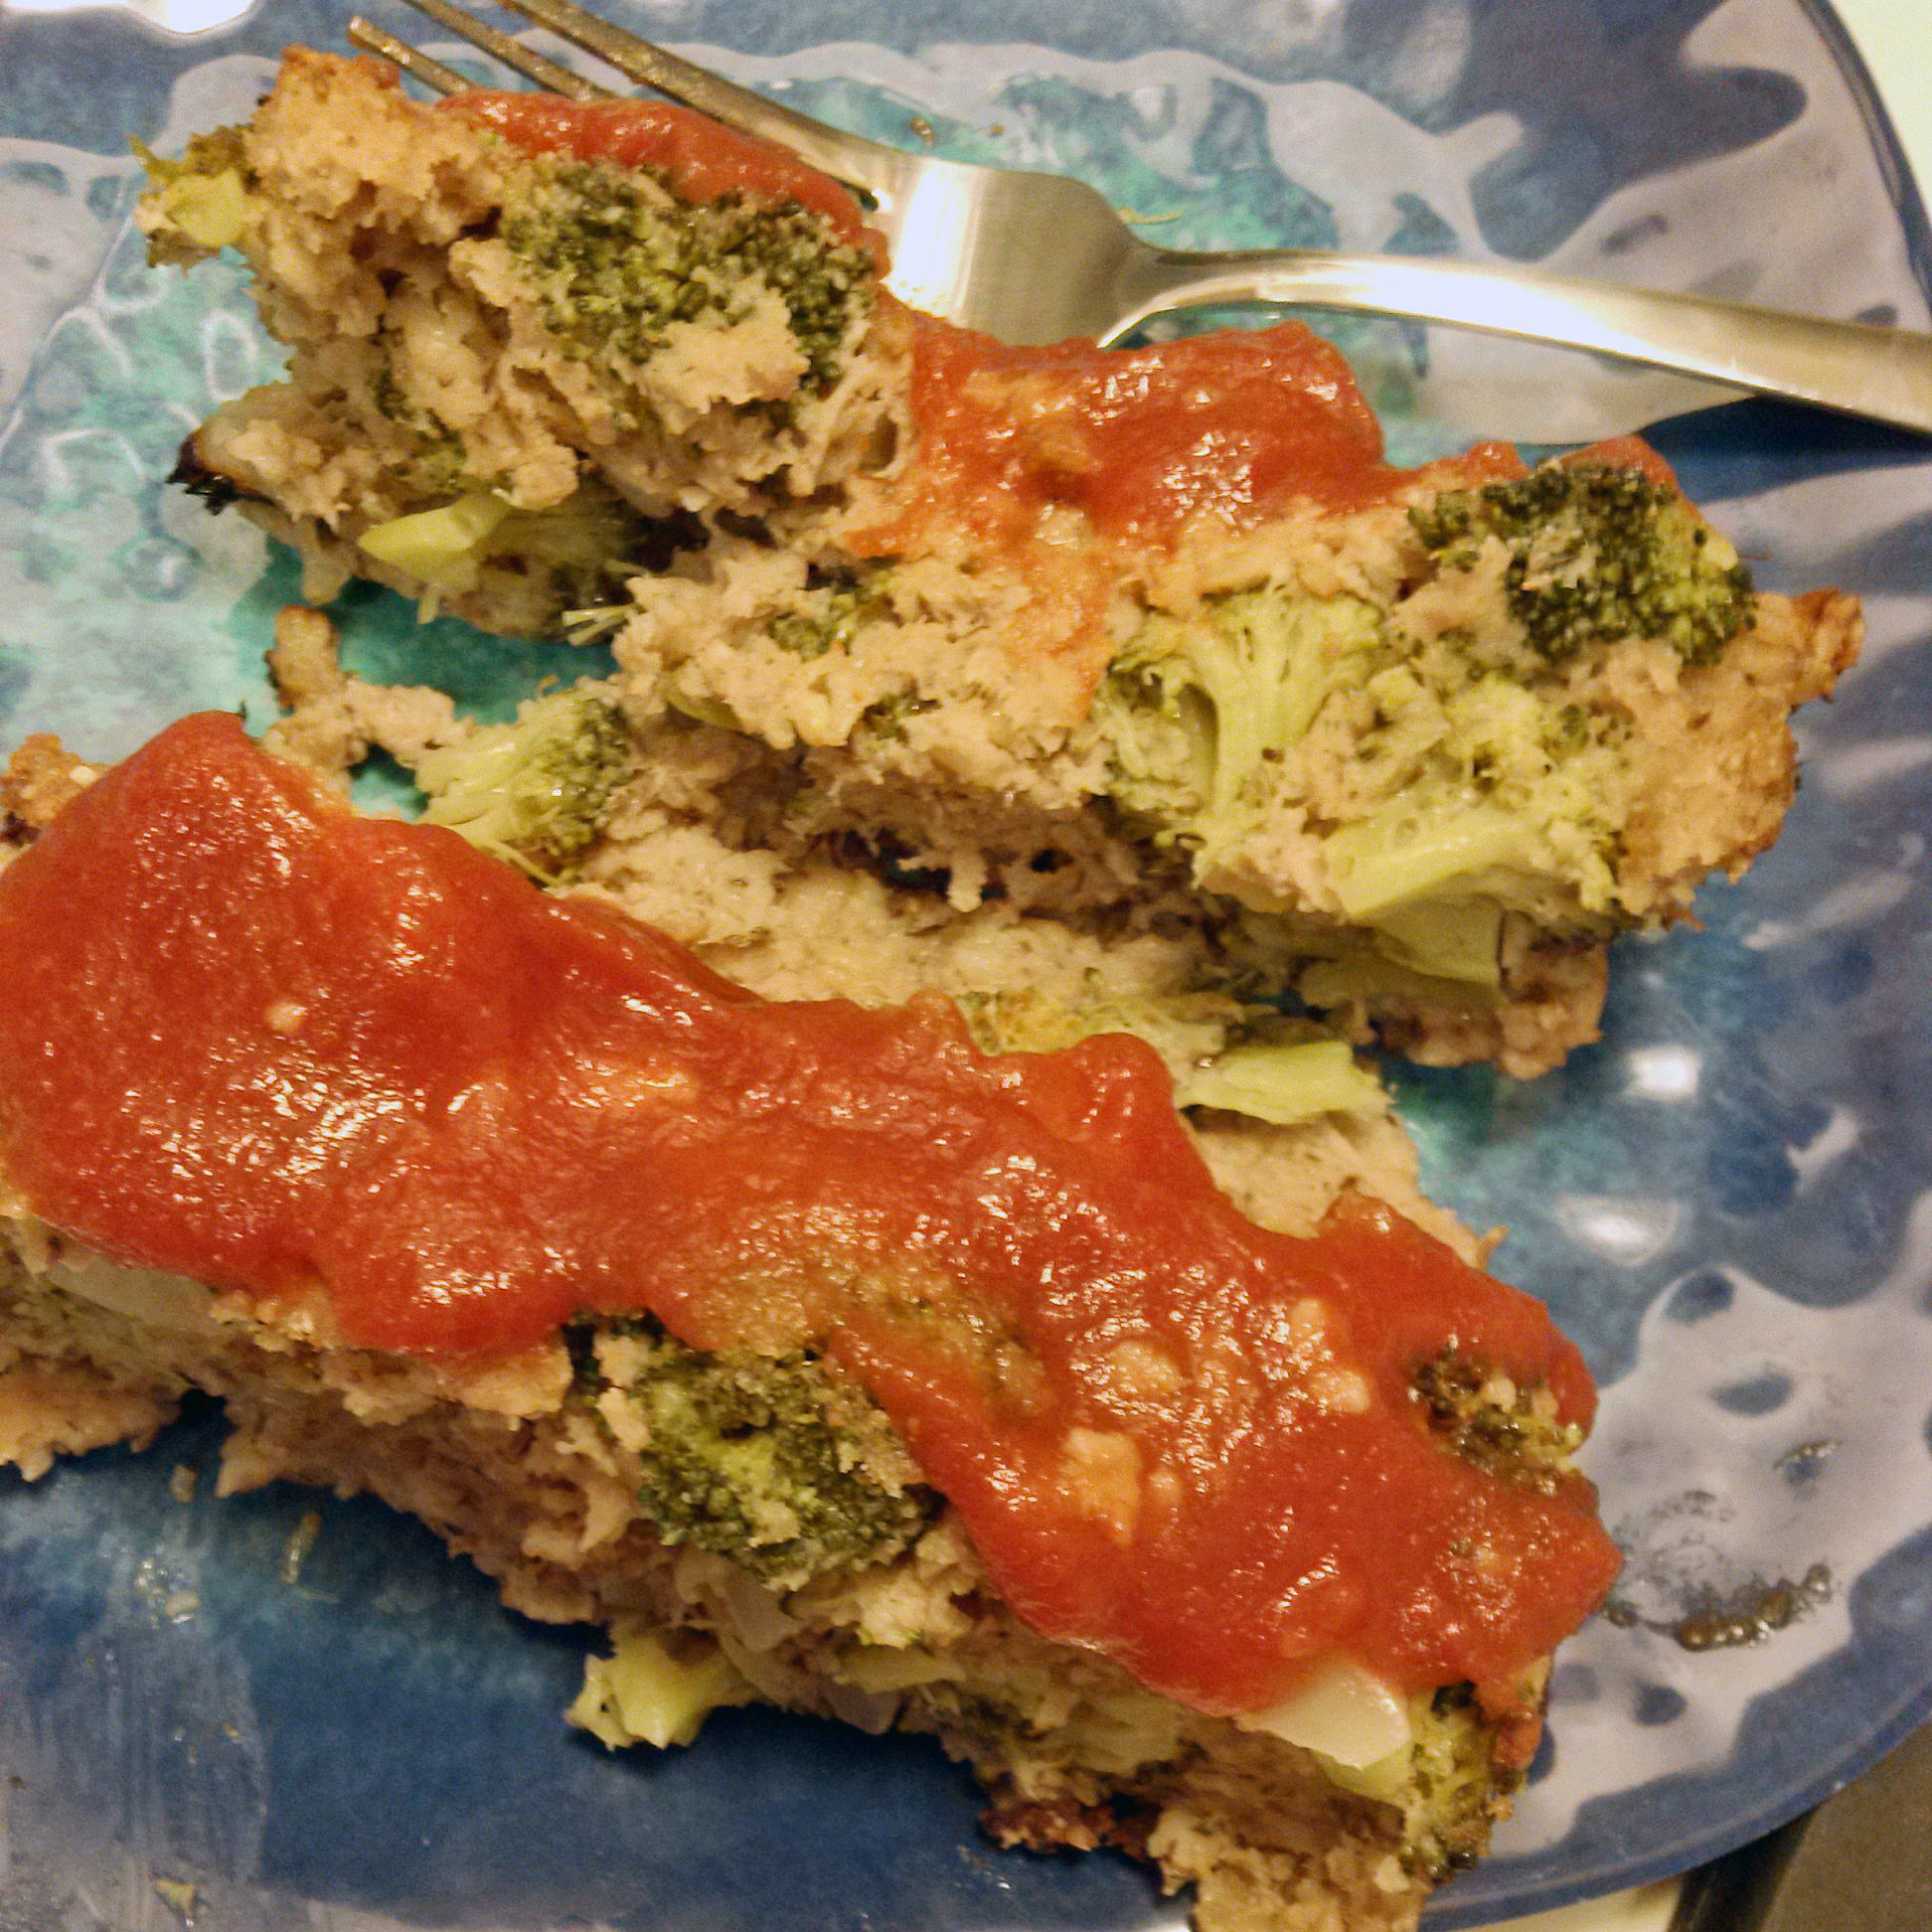 Turkey and Broccoli Meatloaf